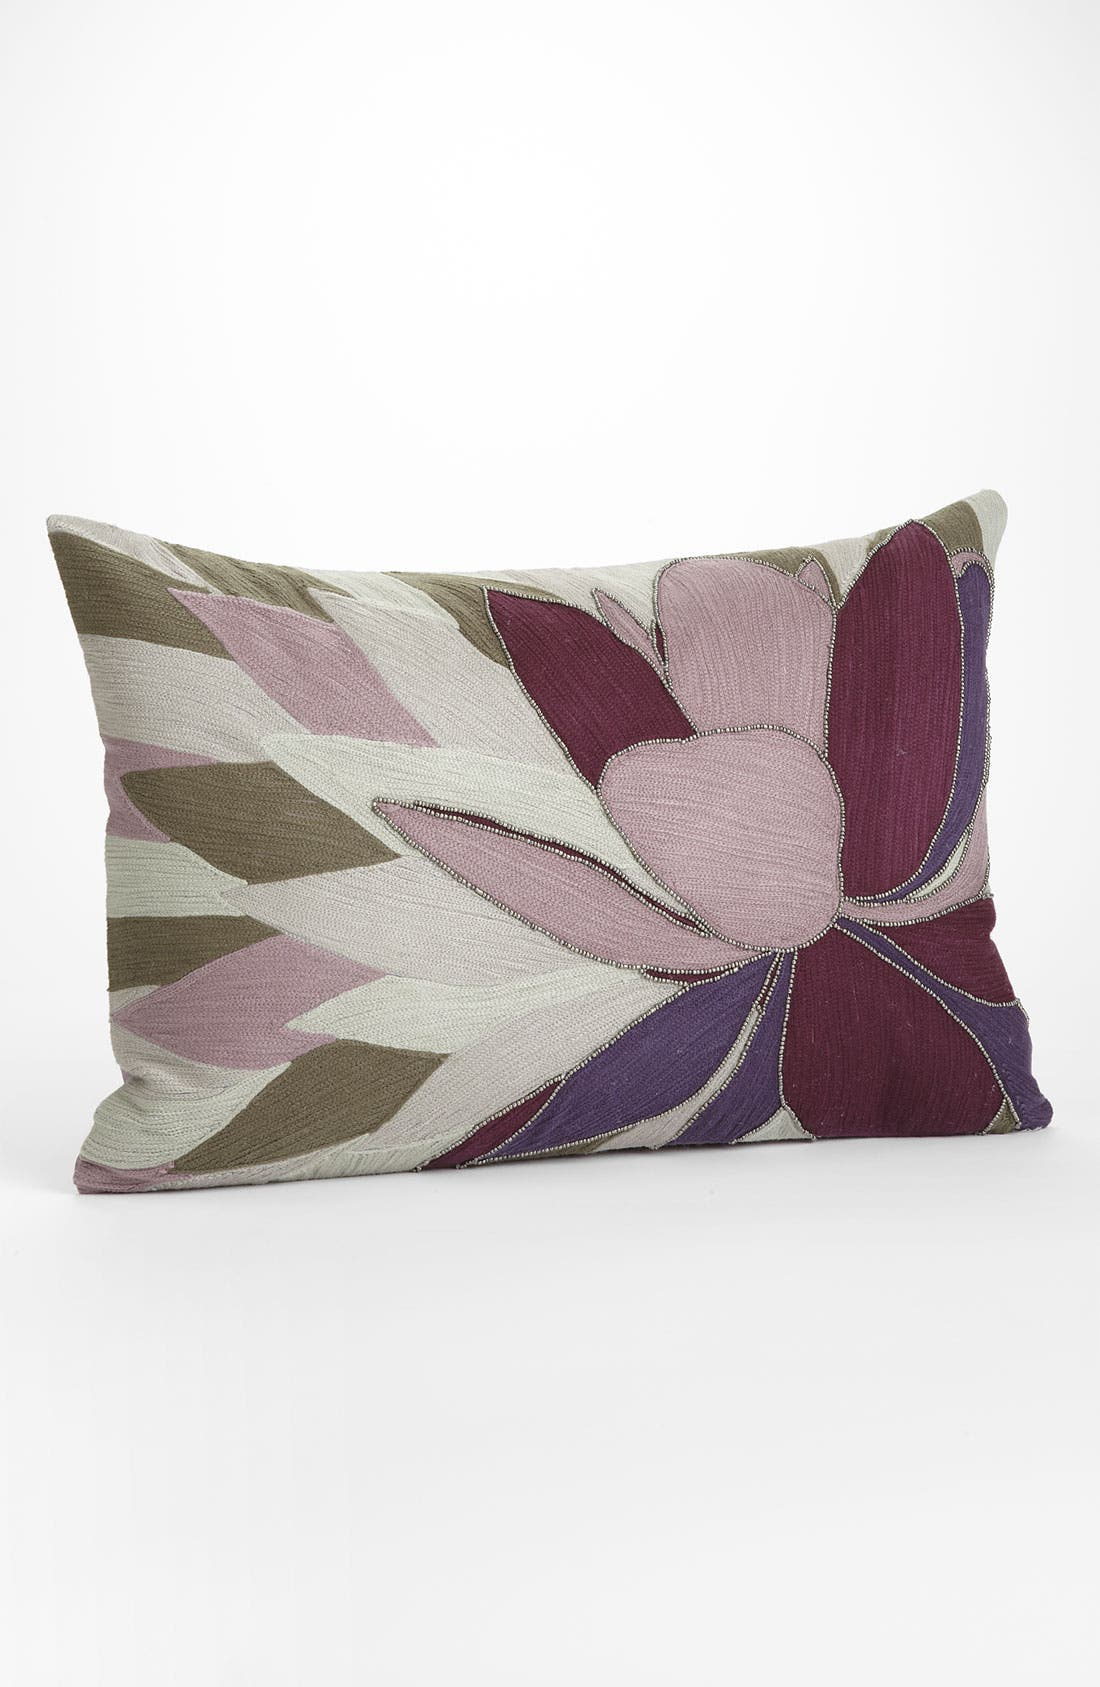 Alternate Image 1 Selected - Nordstrom at Home 'Lotus' Embroidered Pillow